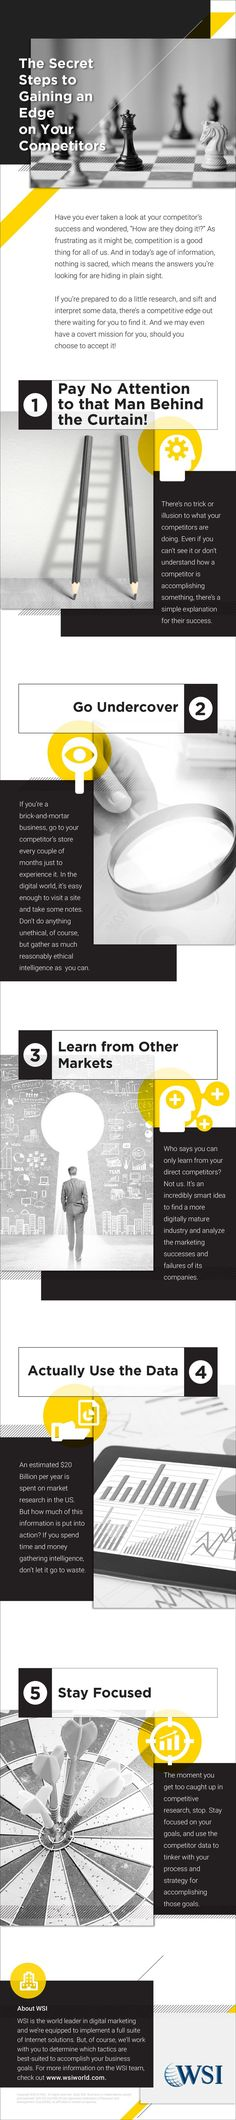 The Secret Steps To Gaining An Edge On Your Competitors - infographic Content Marketing Strategy, Social Media Marketing, Website Structure, Digital Marketing Plan, Social Media Buttons, Business Goals, Business Design, Competitor Analysis, Internet Marketing